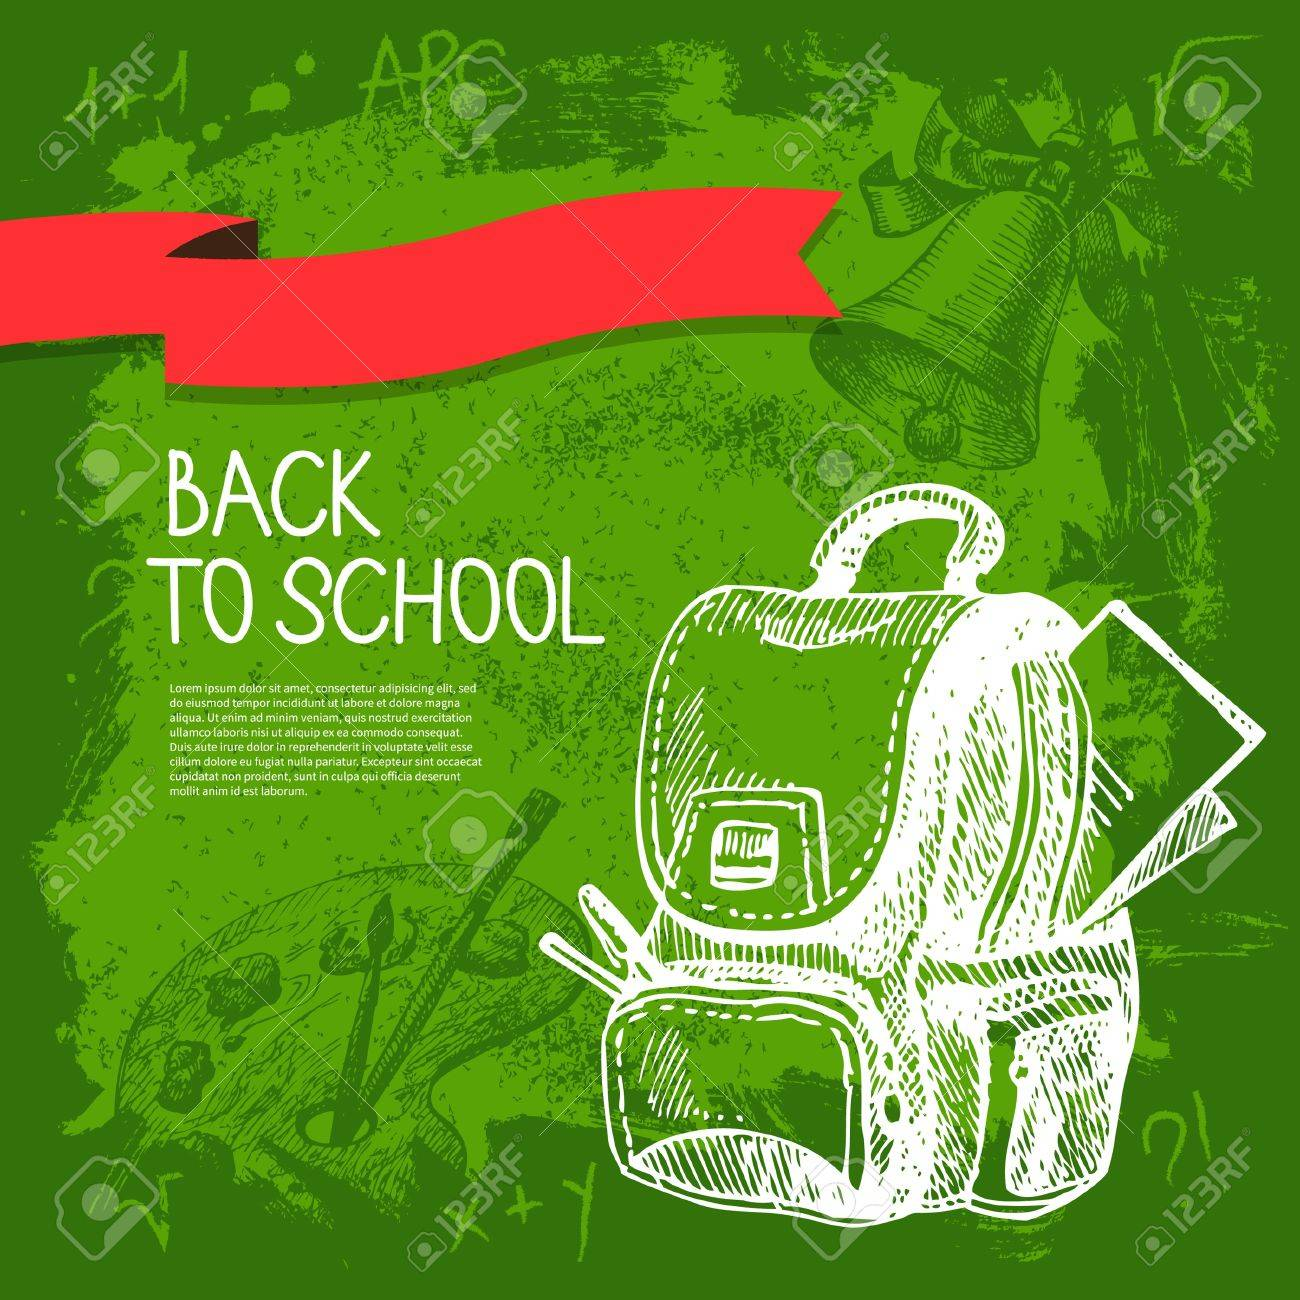 Back to school vector design. Hand drawn vintage  background Stock Vector - 20913314